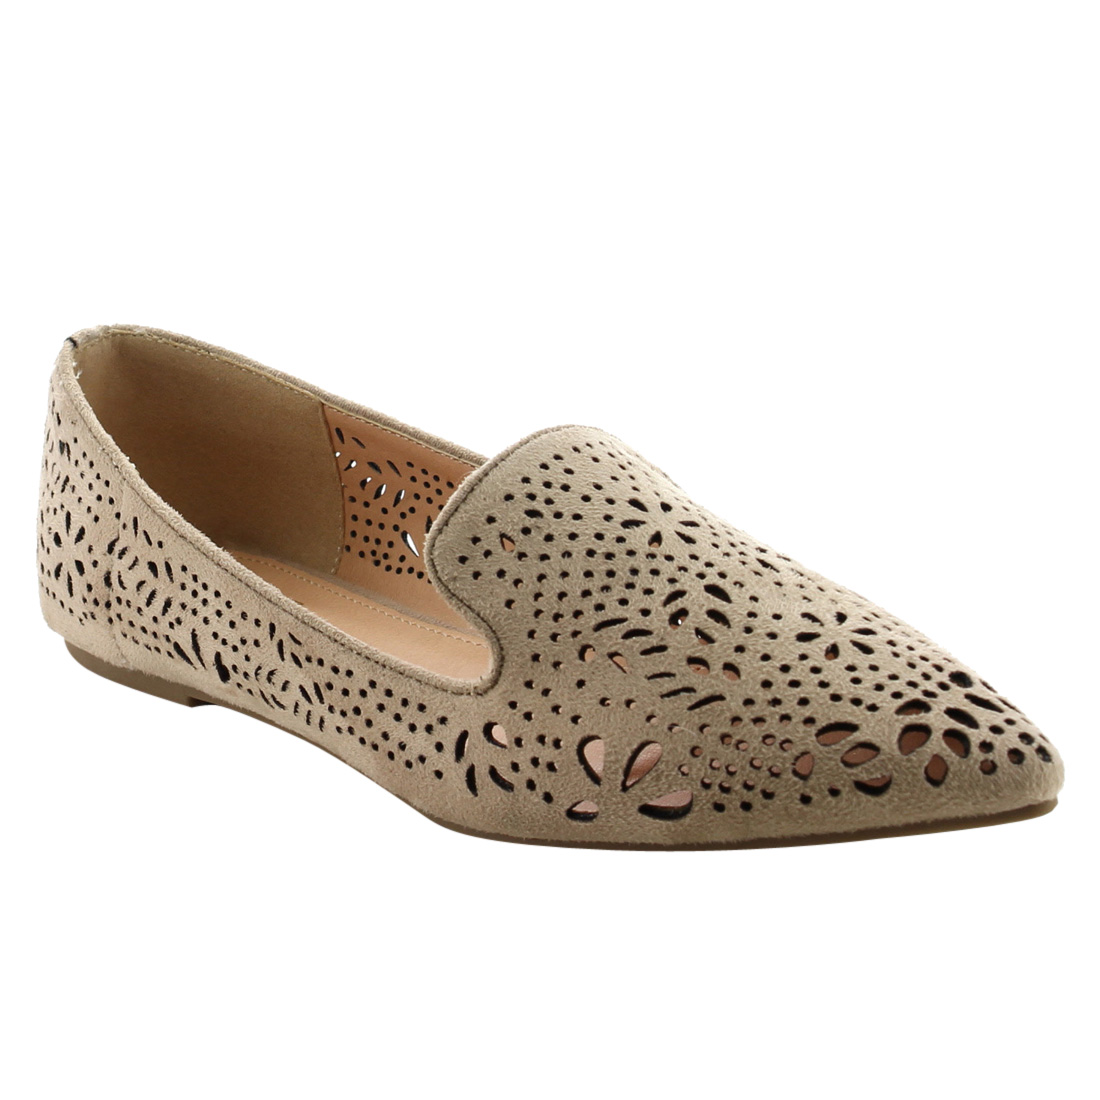 0a5a9fb52f BETANI - BETANI FJ80 Women s Solid Cut Out Slip On Ballerina Ballet Flats -  Walmart.com